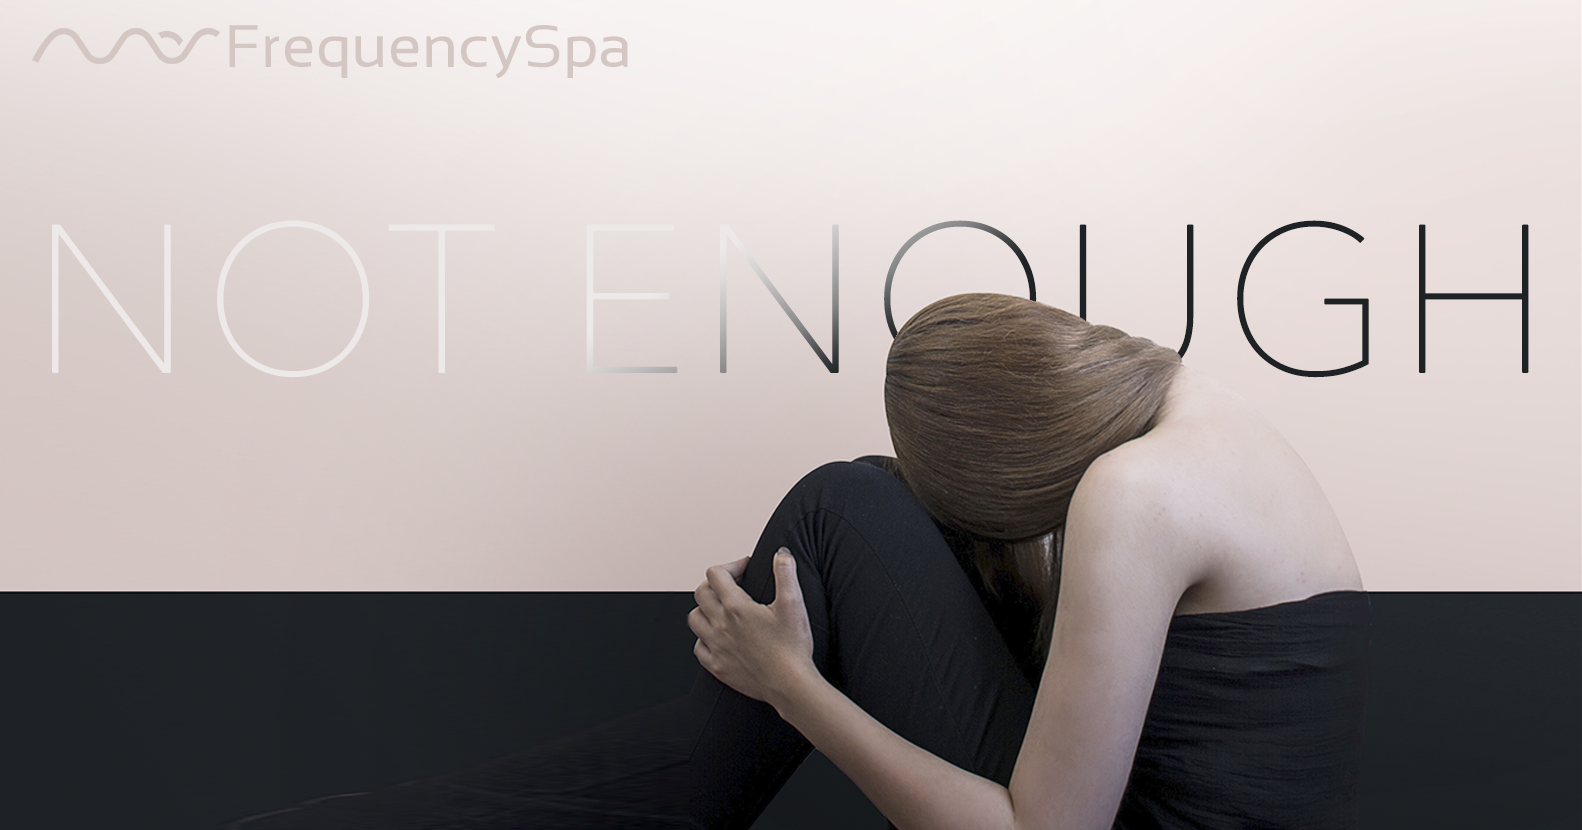 enough-mas-sajady-live-frequency-spa-3.png